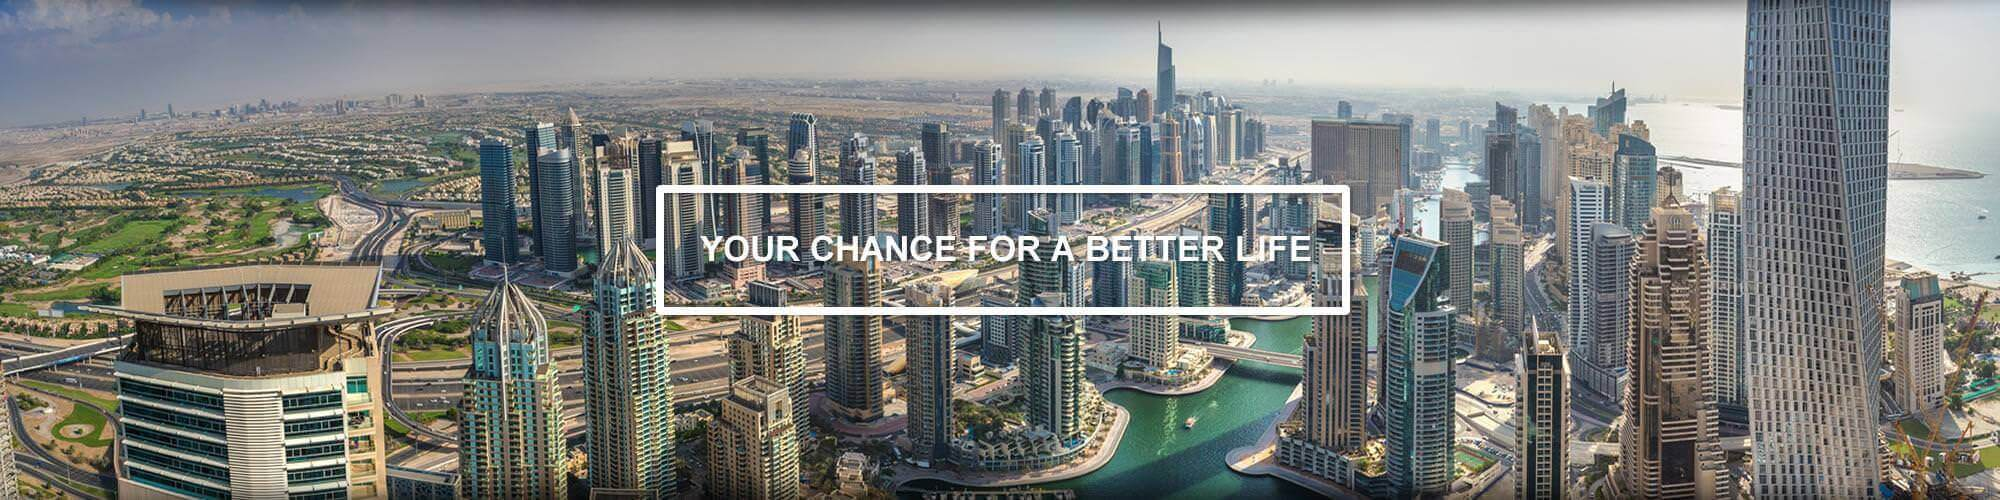 Dubai Citizenship Program